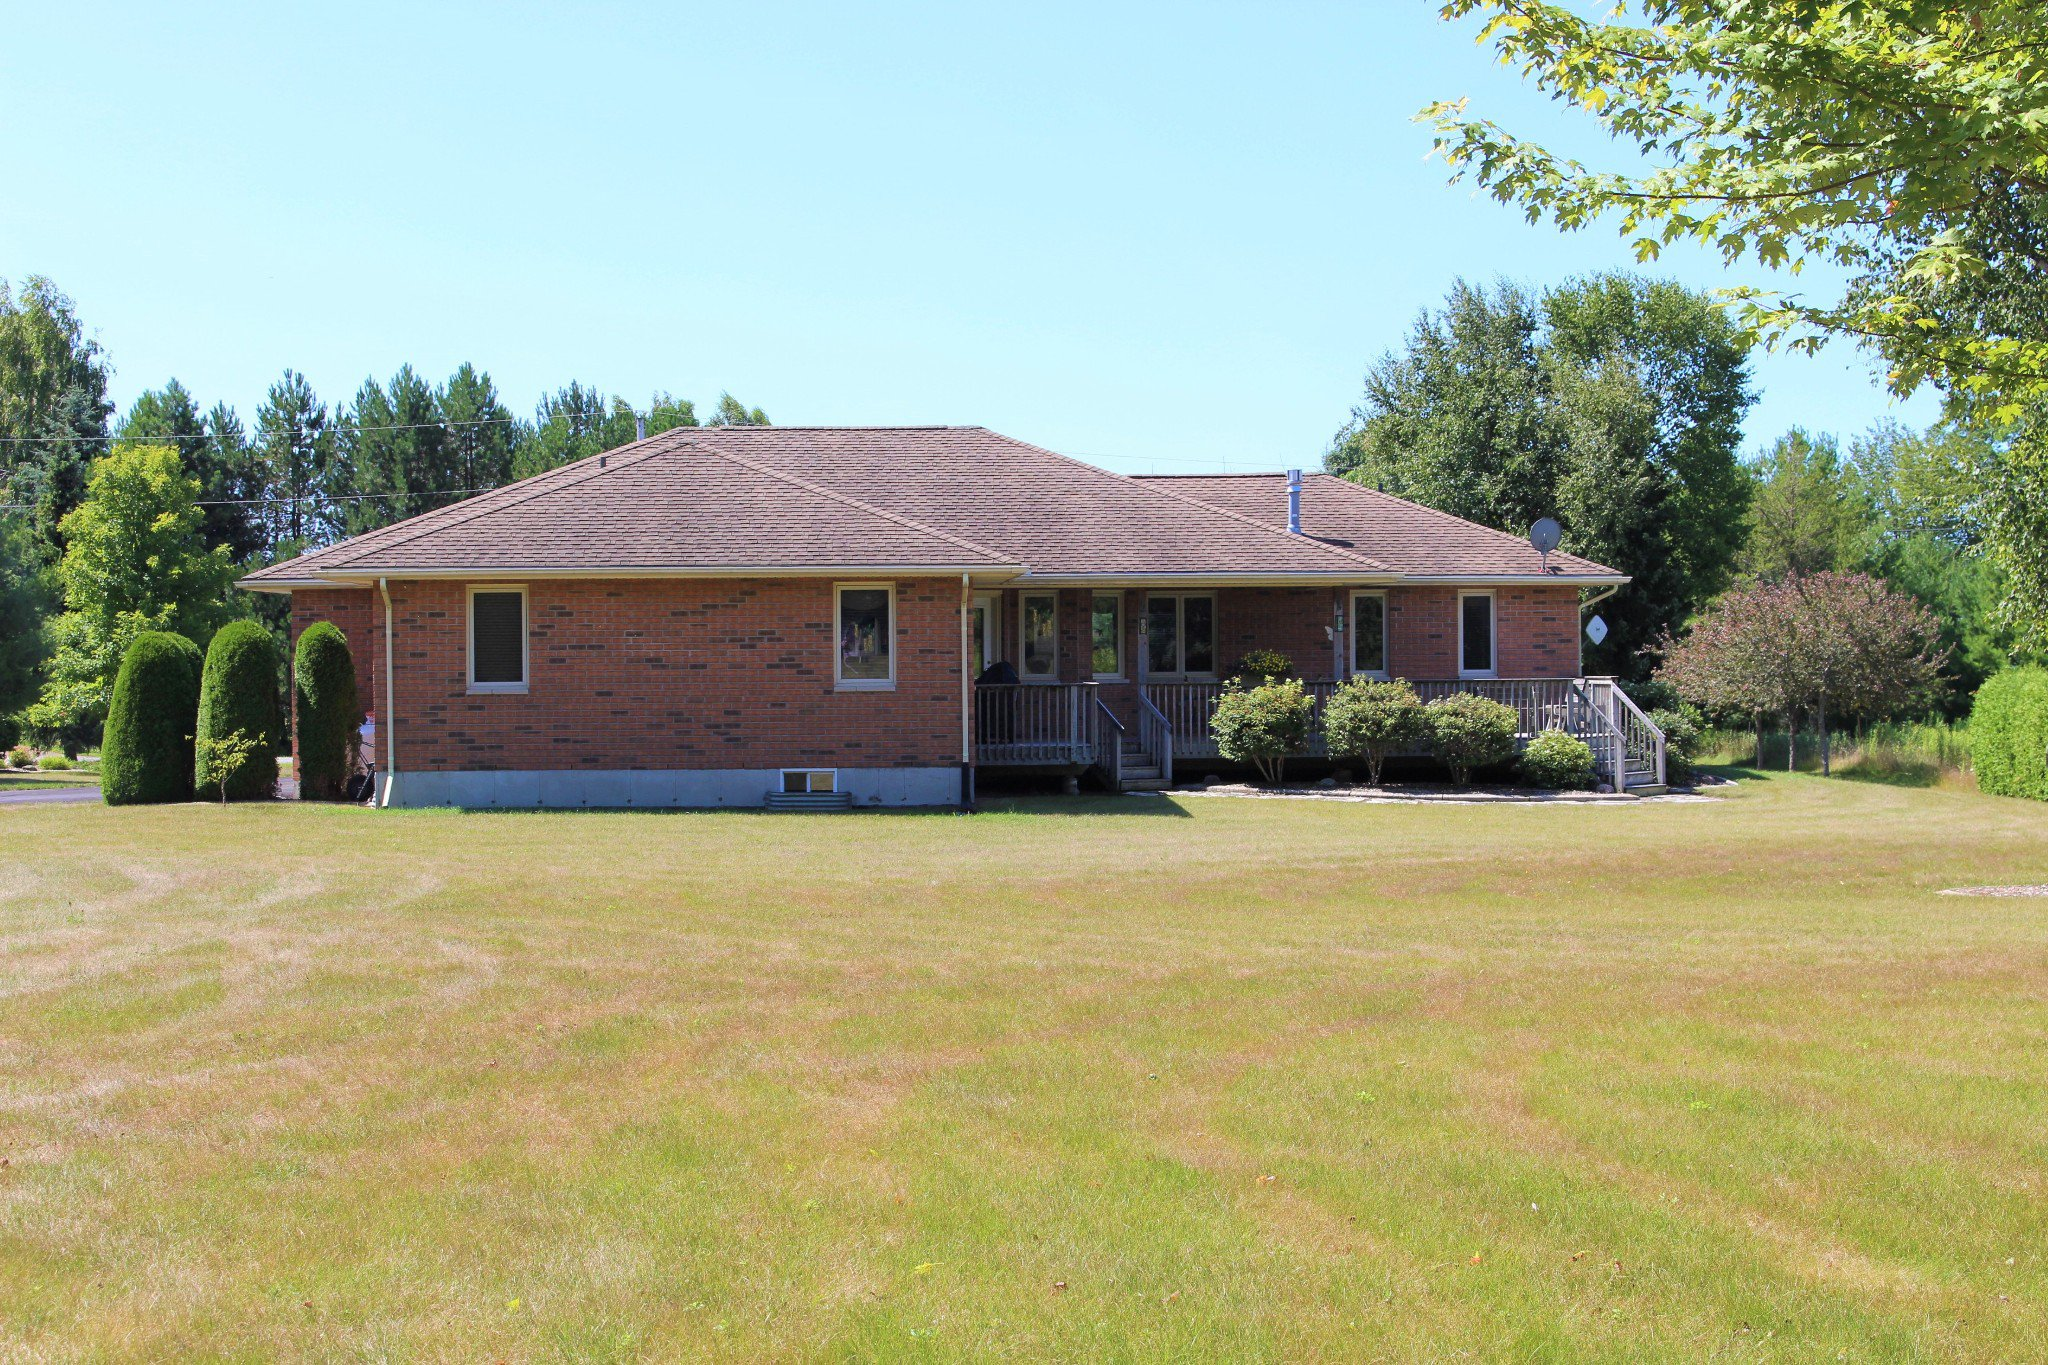 Photo 49: Photos: 159 Nawautin Drive in Grafton: Residential Detached for sale : MLS®# 40012652